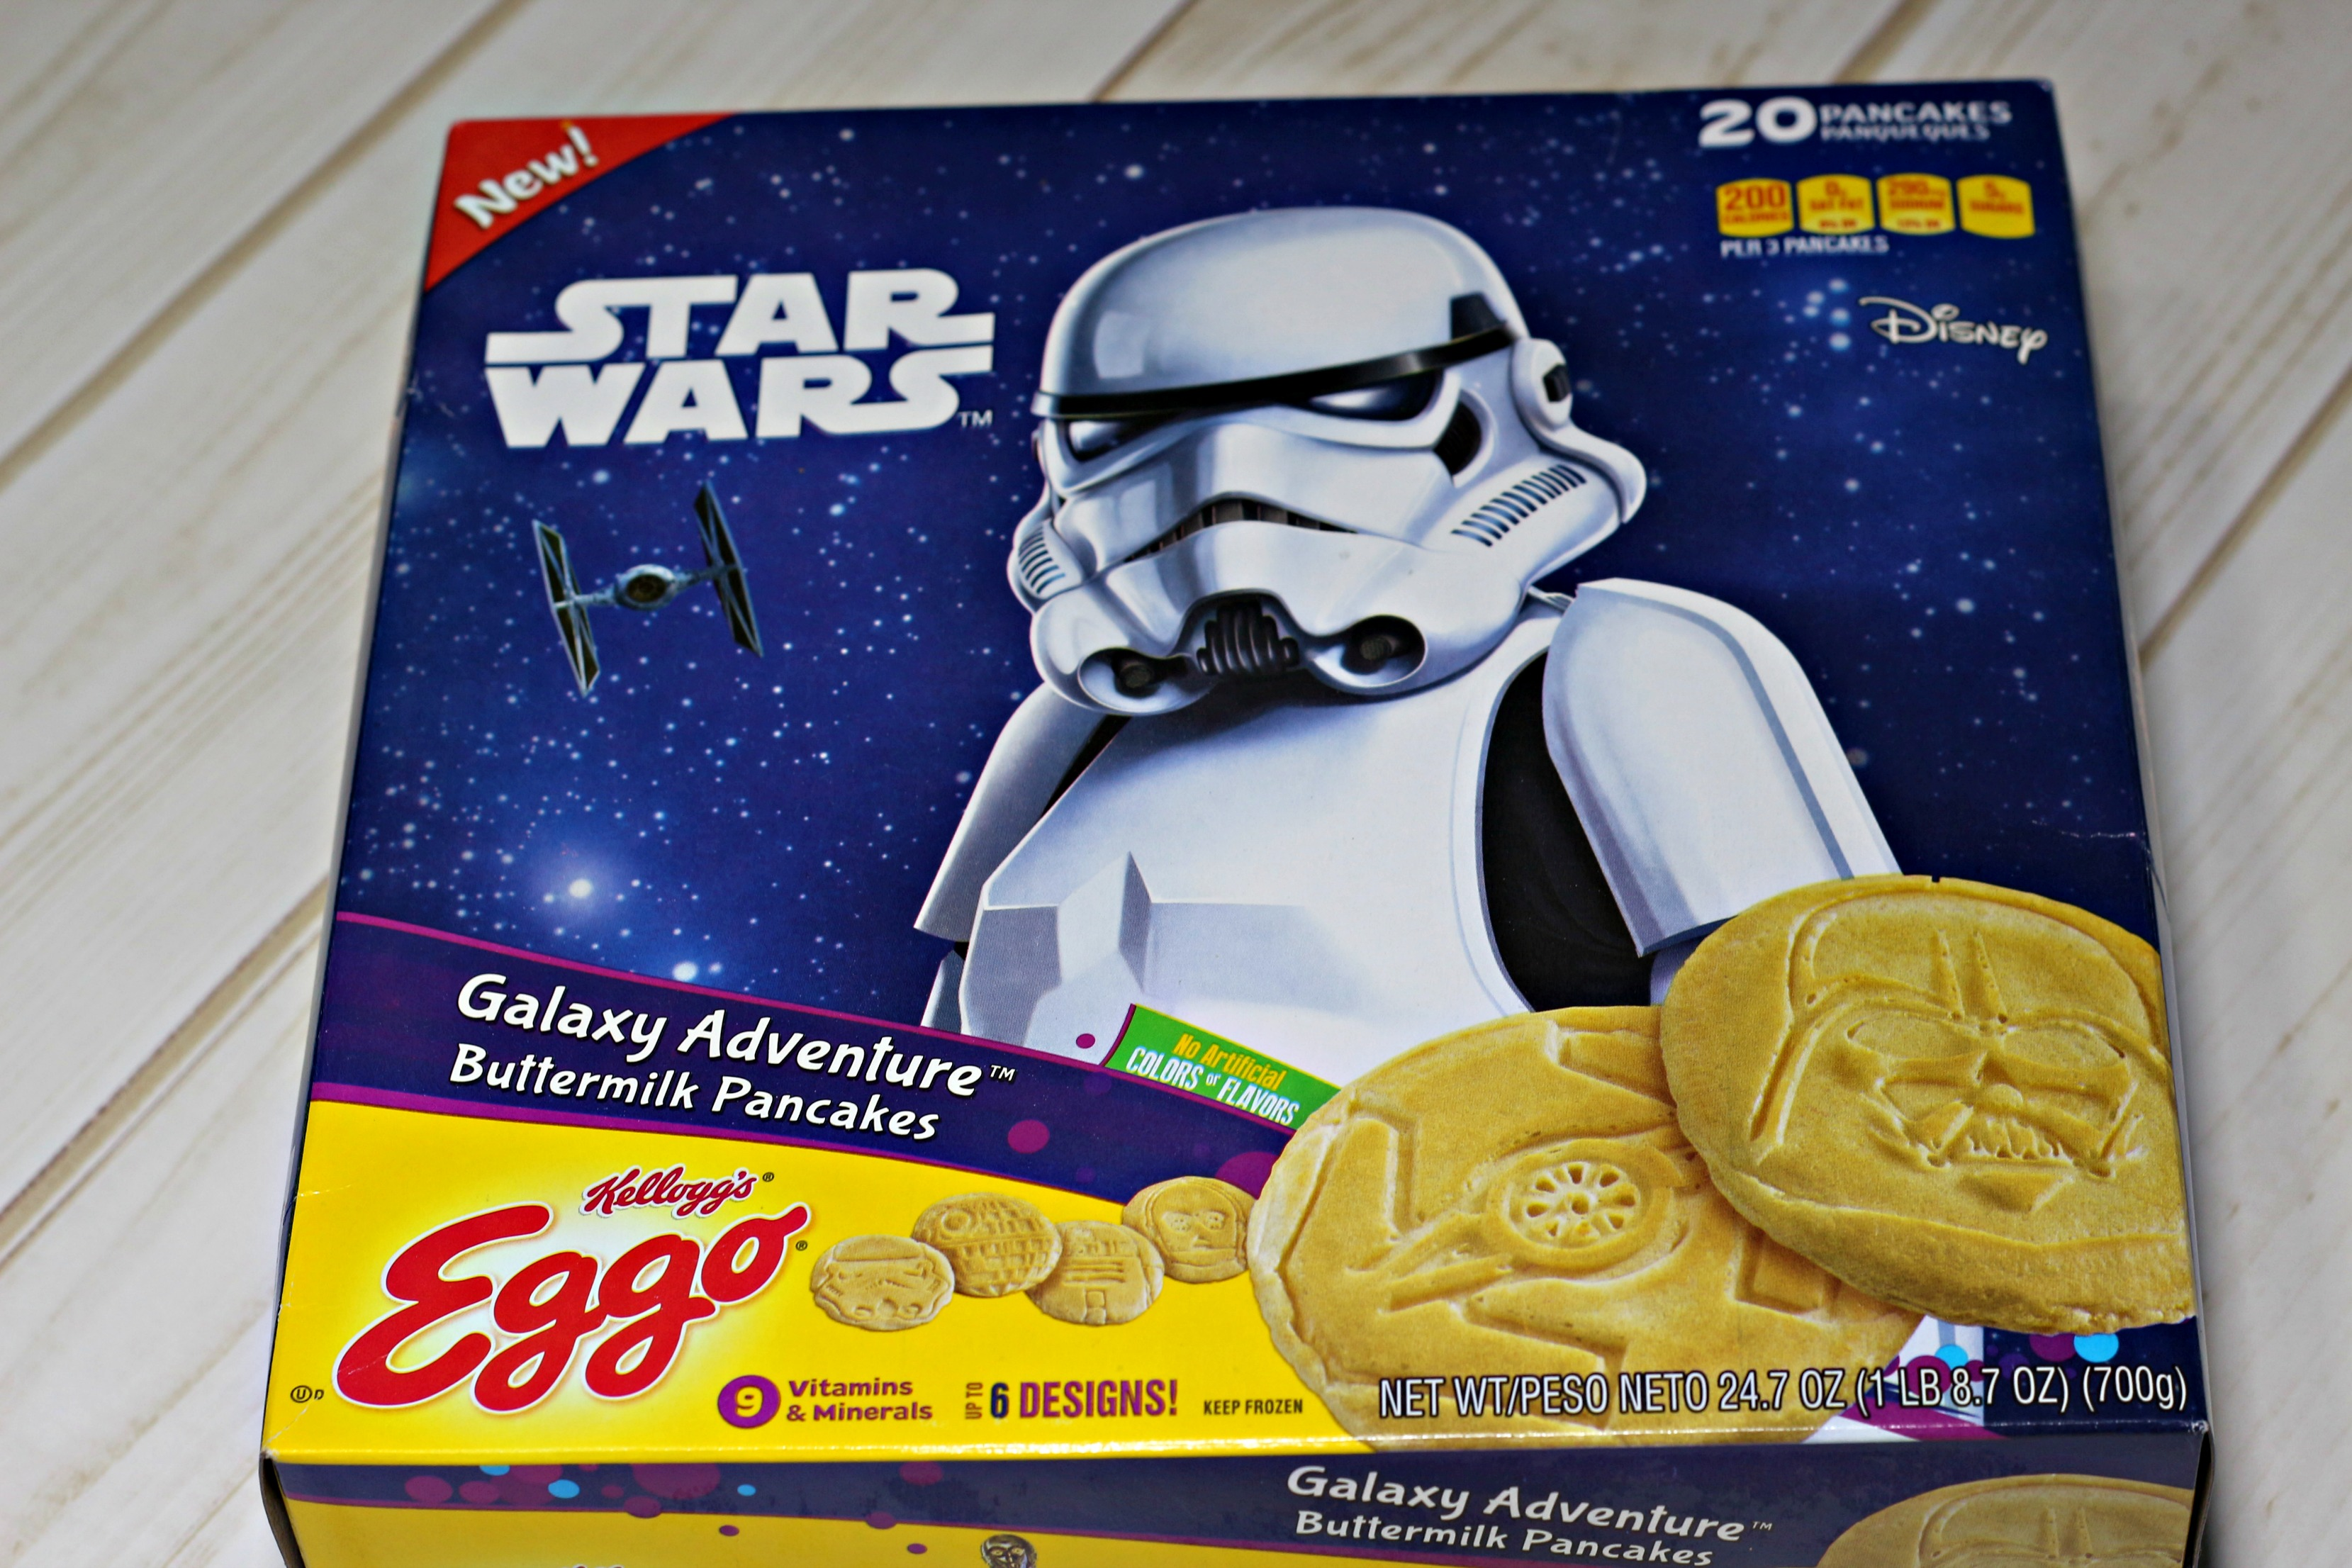 Surviving Winter Break with Kids and a Star Wars Breakfast Party|Ripped Jeans and Bifocals